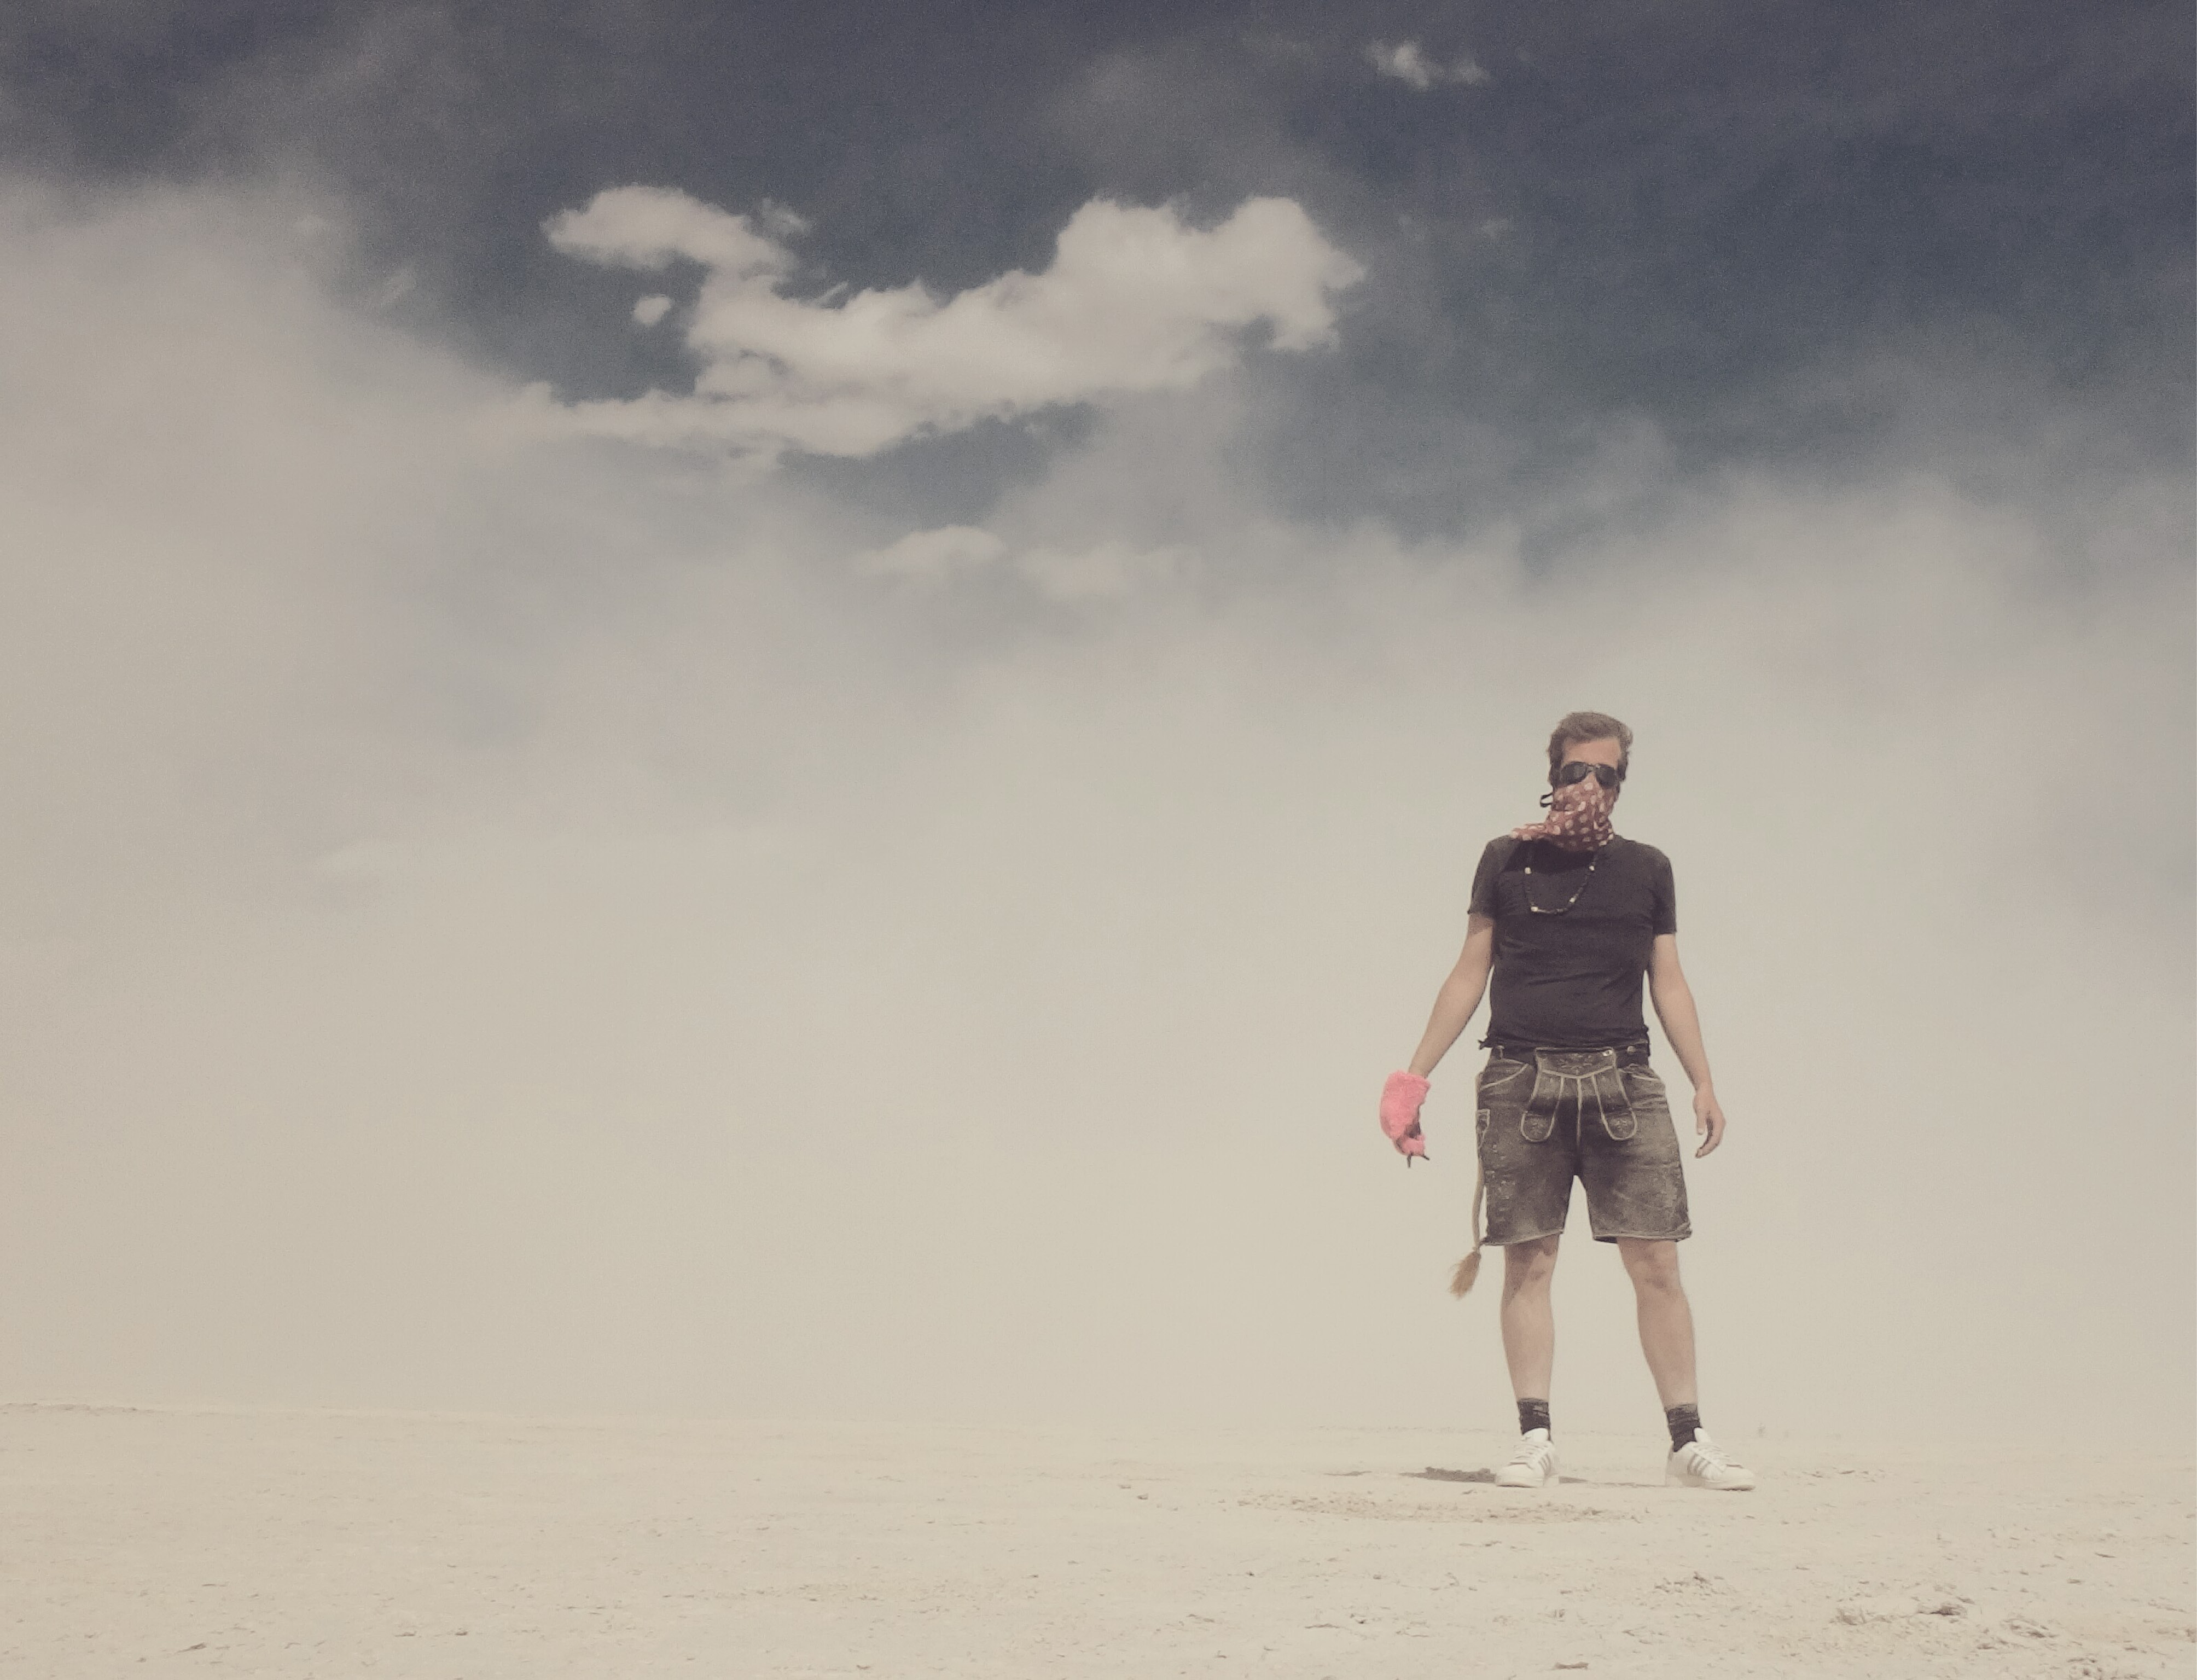 Moritz is standing in the middle of the desert in Lederhosen at the Burning Man.